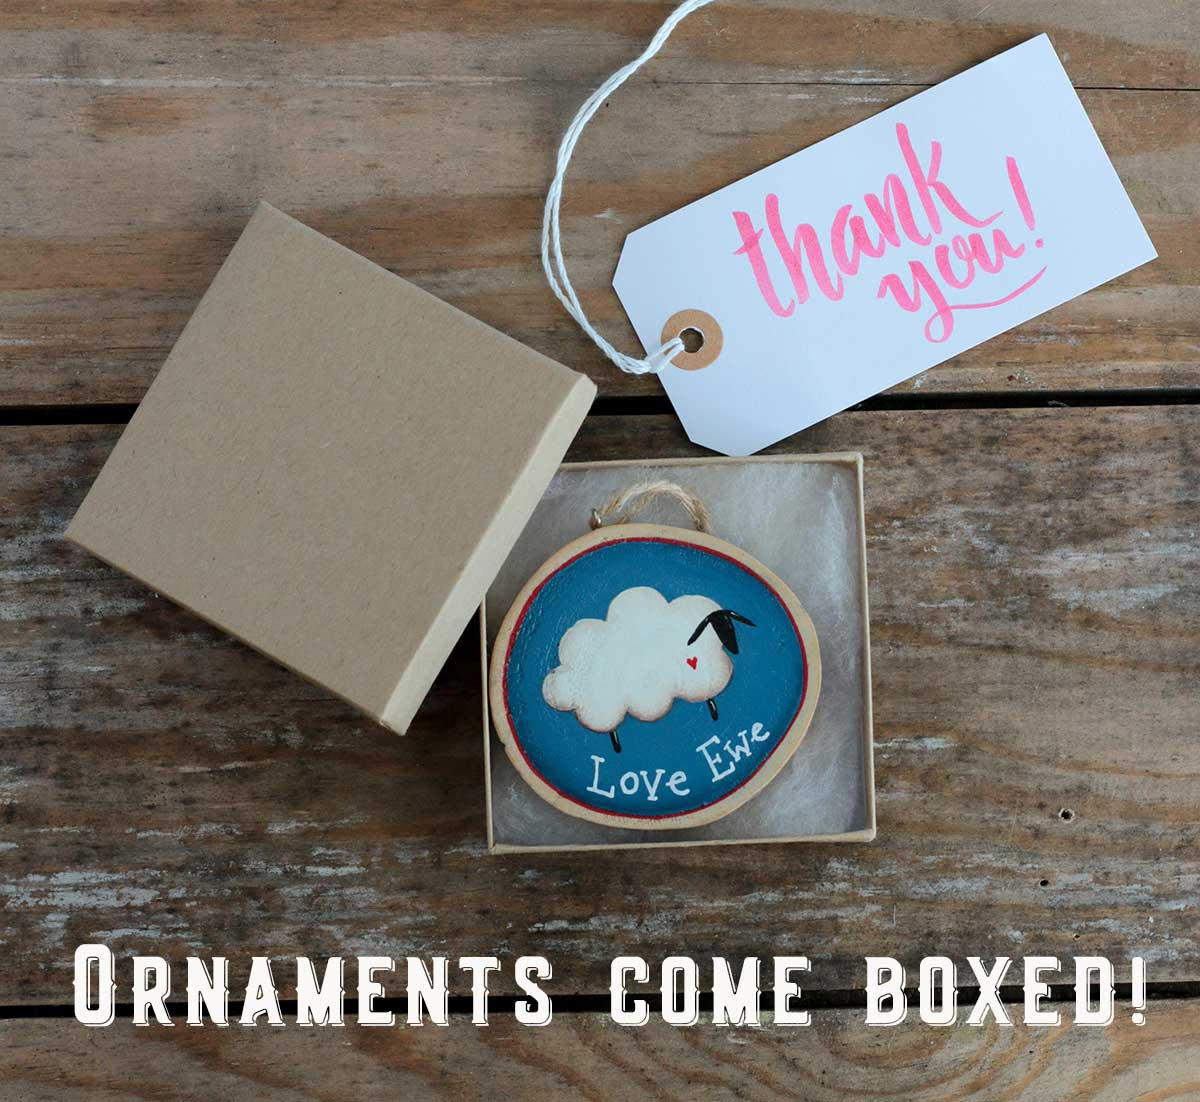 Ornaments Come Boxed!